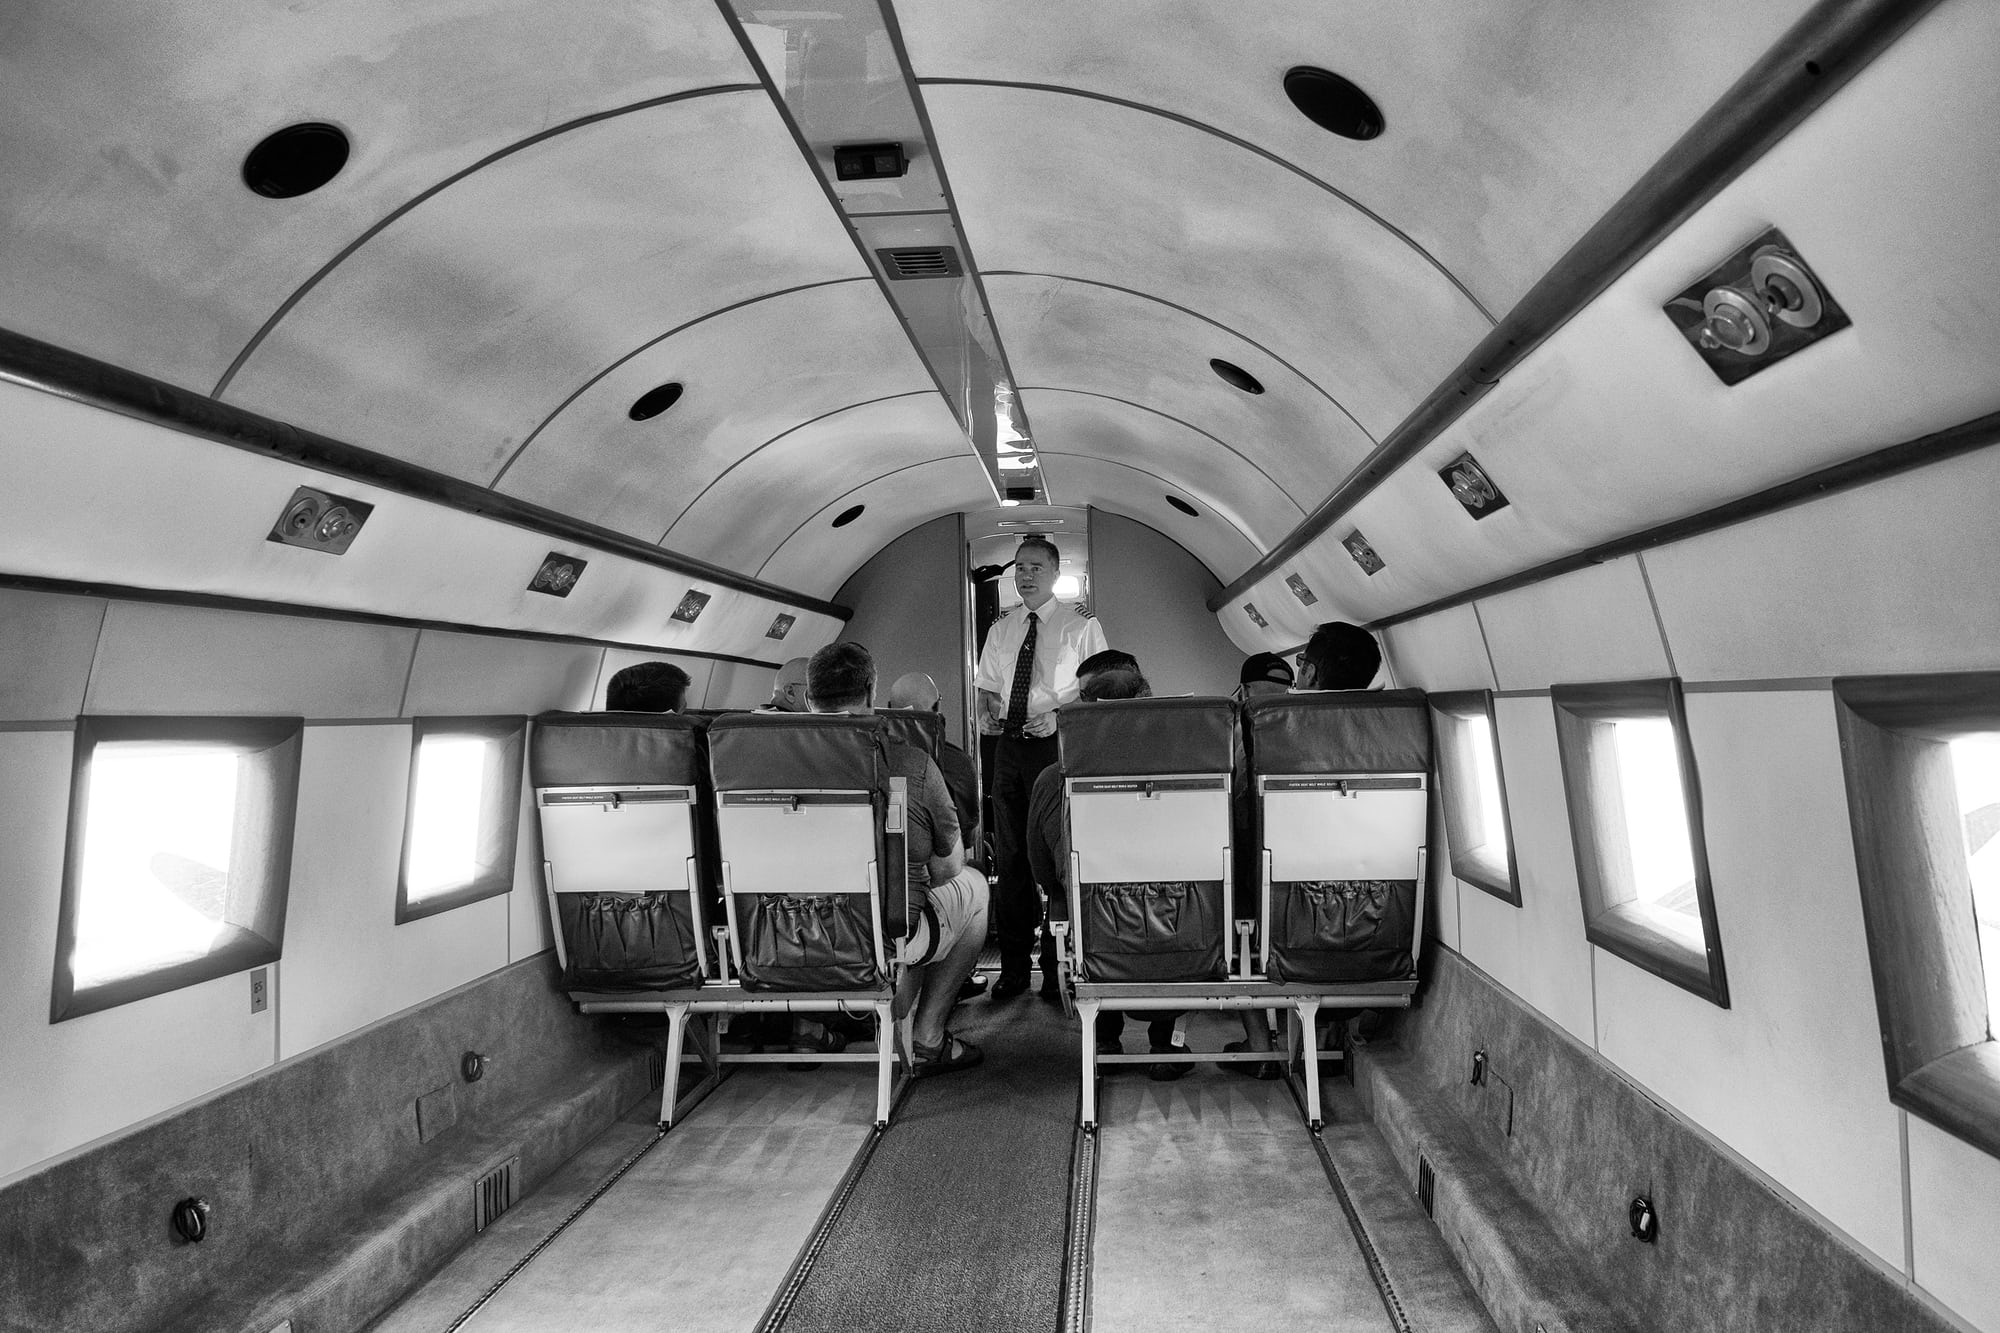 Breitling DC-3 cabin Dispatches: Breitling's DC-3 To Become Oldest Aircraft Ever To Circle The Earth Dispatches: Breitling's DC-3 To Become Oldest Aircraft Ever To Circle The Earth P8212248 bw